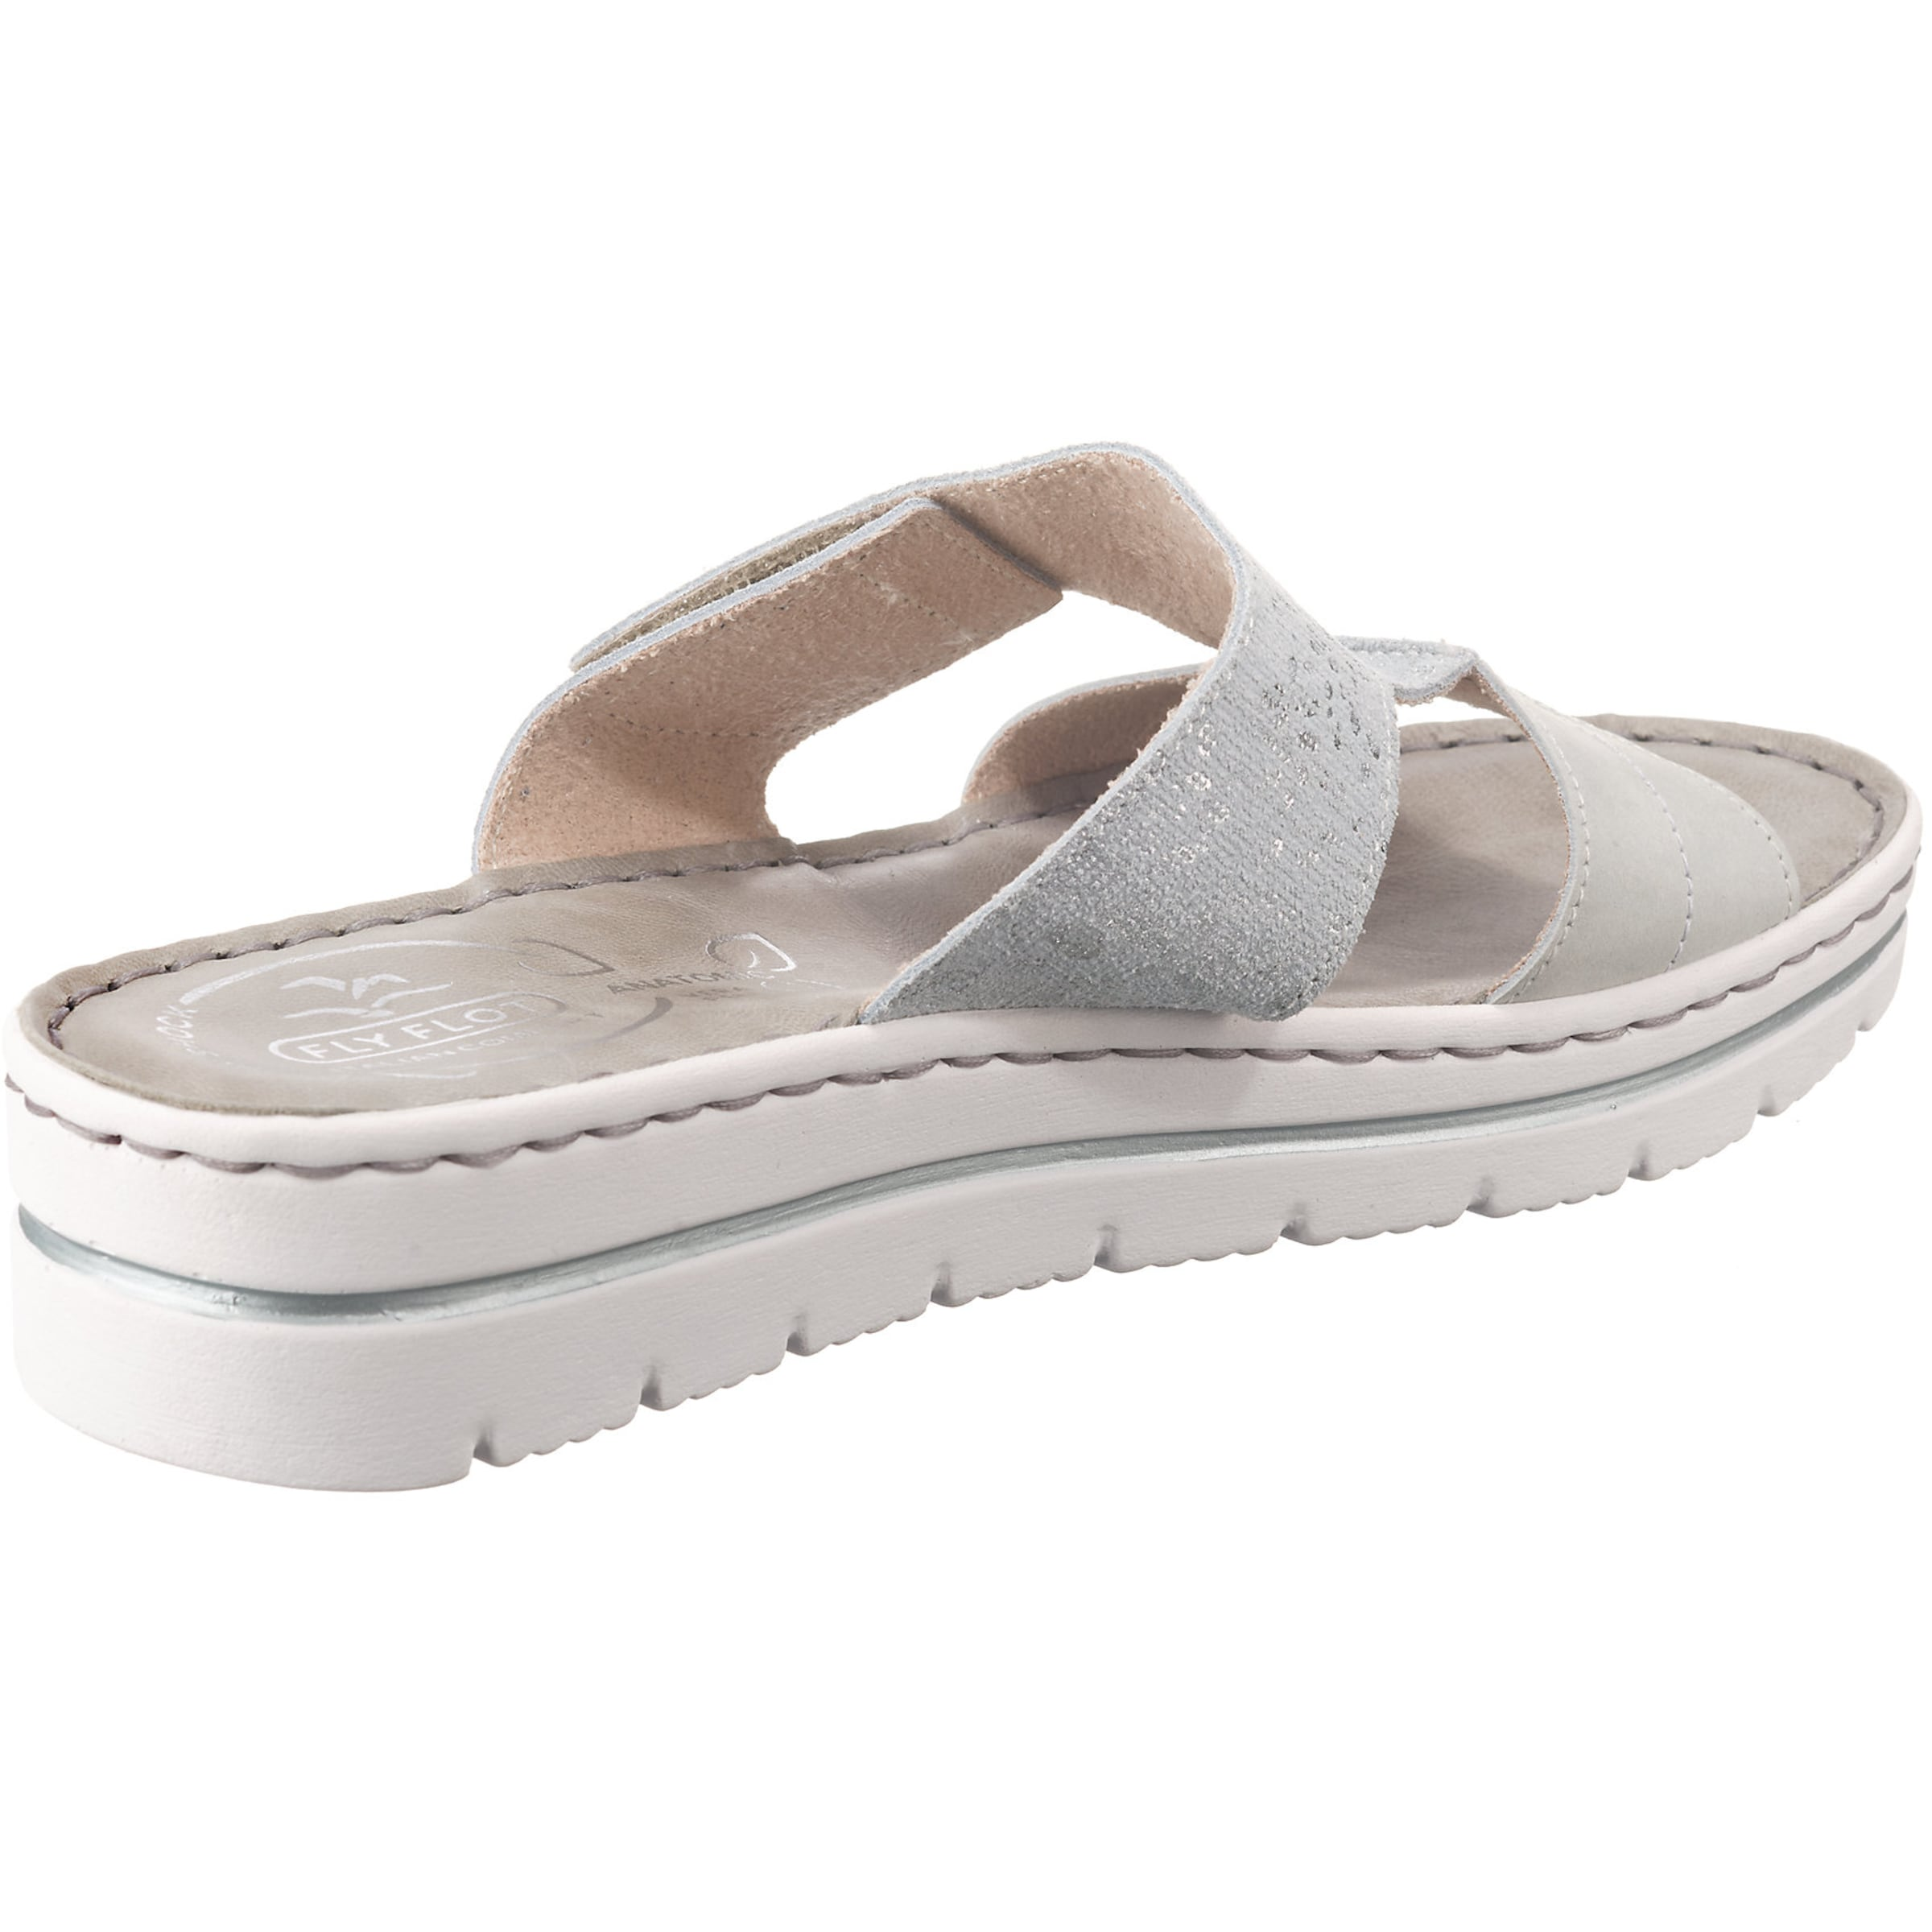 Pantoffeln In Silber In Pantoffeln Fly Flot Flot Silber Fly eWoCBxdr